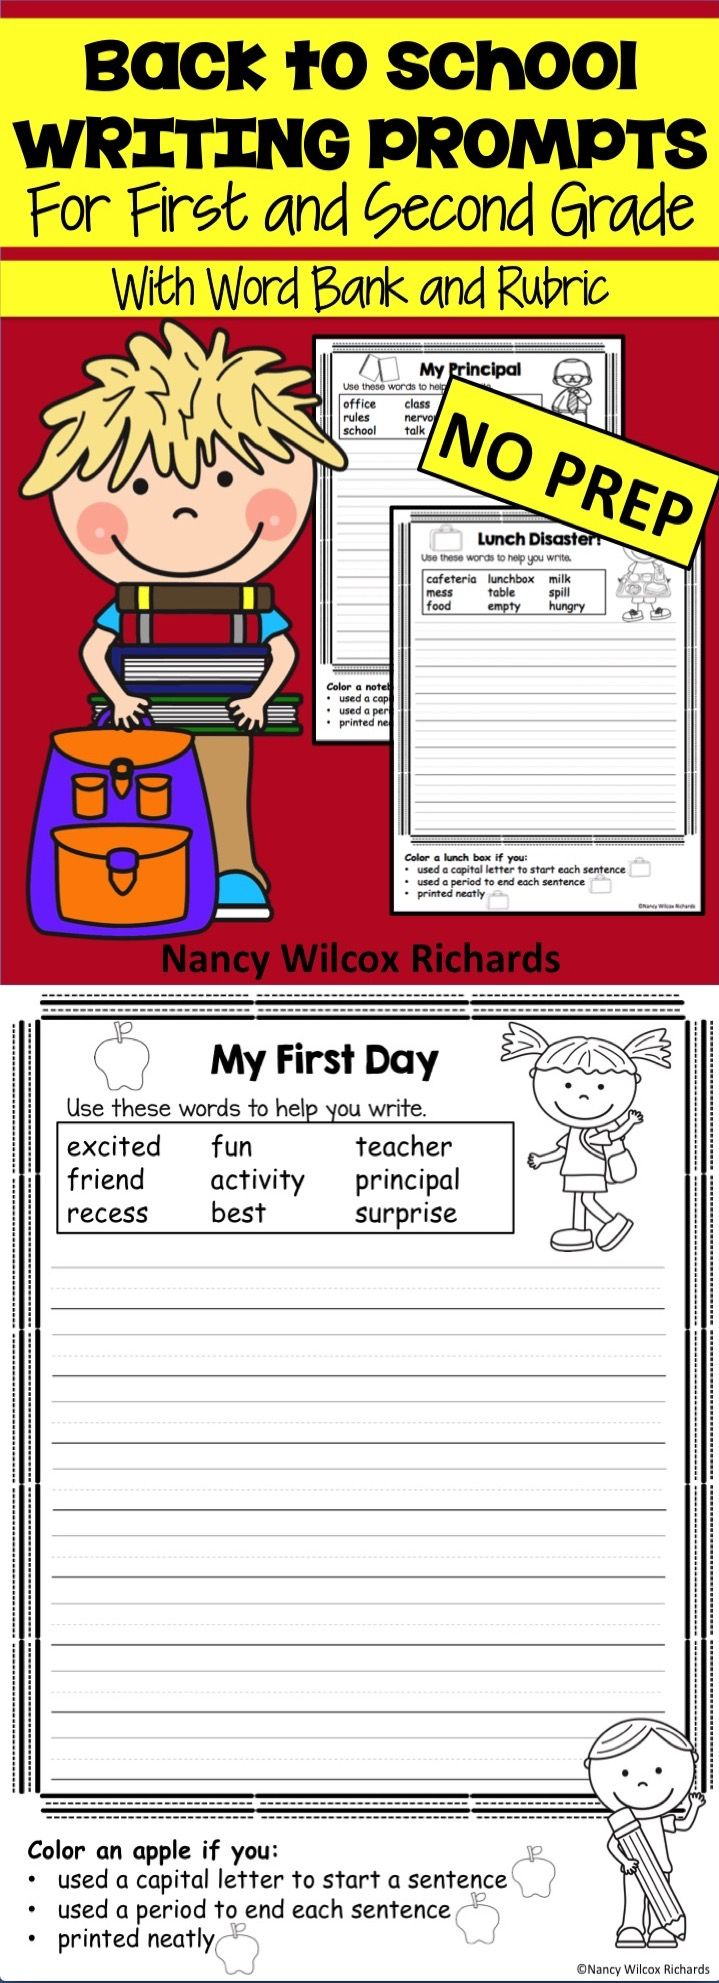 Back to school writing prompts that are fun for K-2! Includes a word bank and rubric!